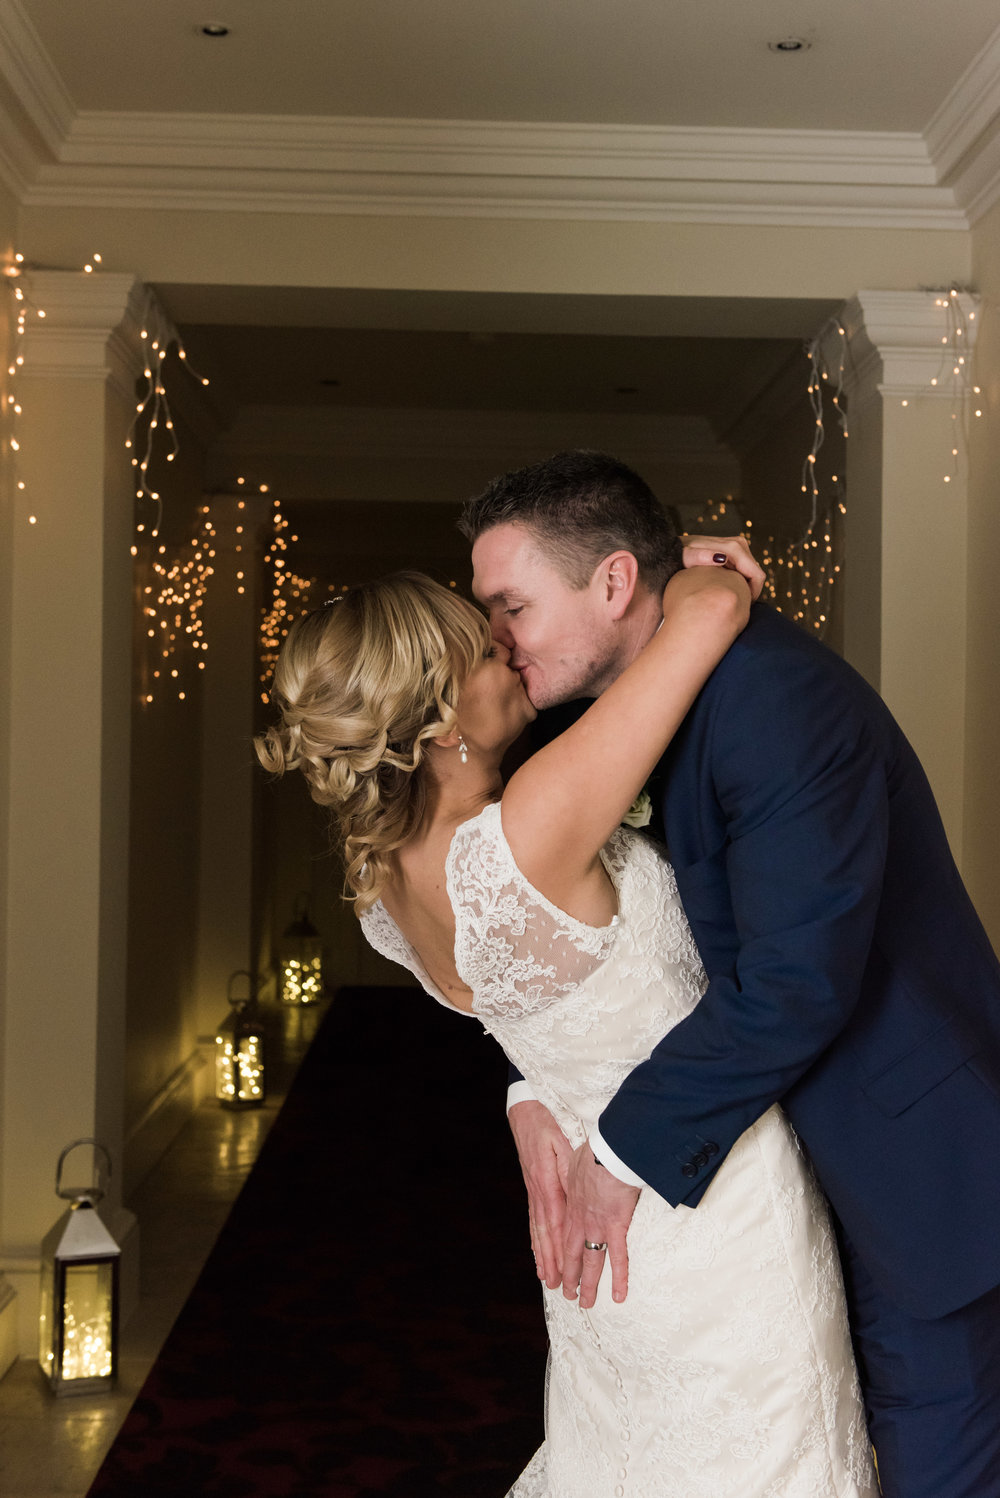 Katie and Scott Wedding - 22.12.2016-489.JPG